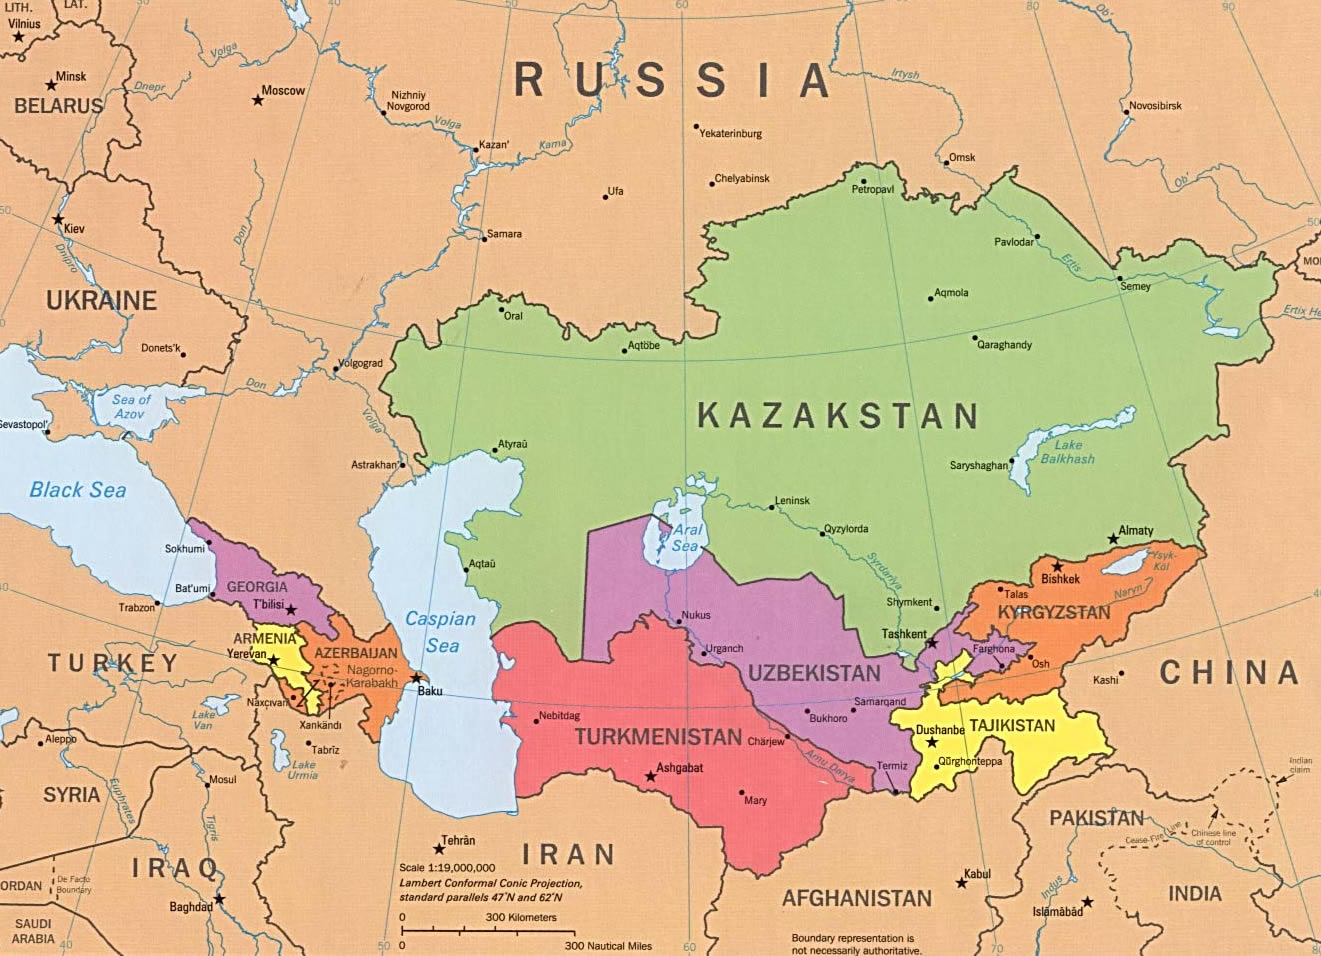 Vol. 6 nr. 10 | 2013 – The East-West Strategic Corridor from Central Asia to Europe and Ukraine's Interests